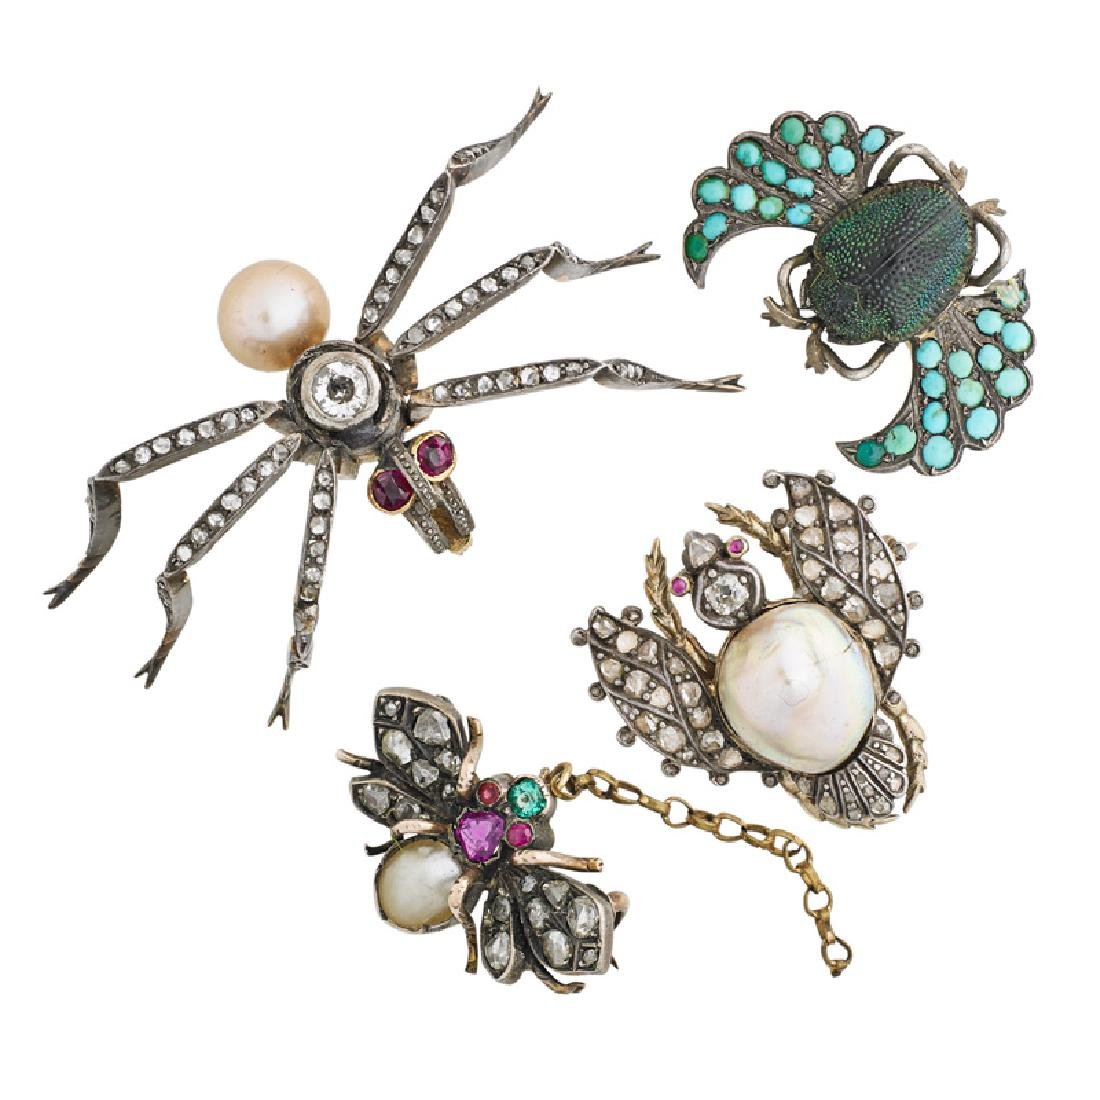 FOUR ANTIQUE DIAMOND OR GEM-SET INSECT BROOCHES